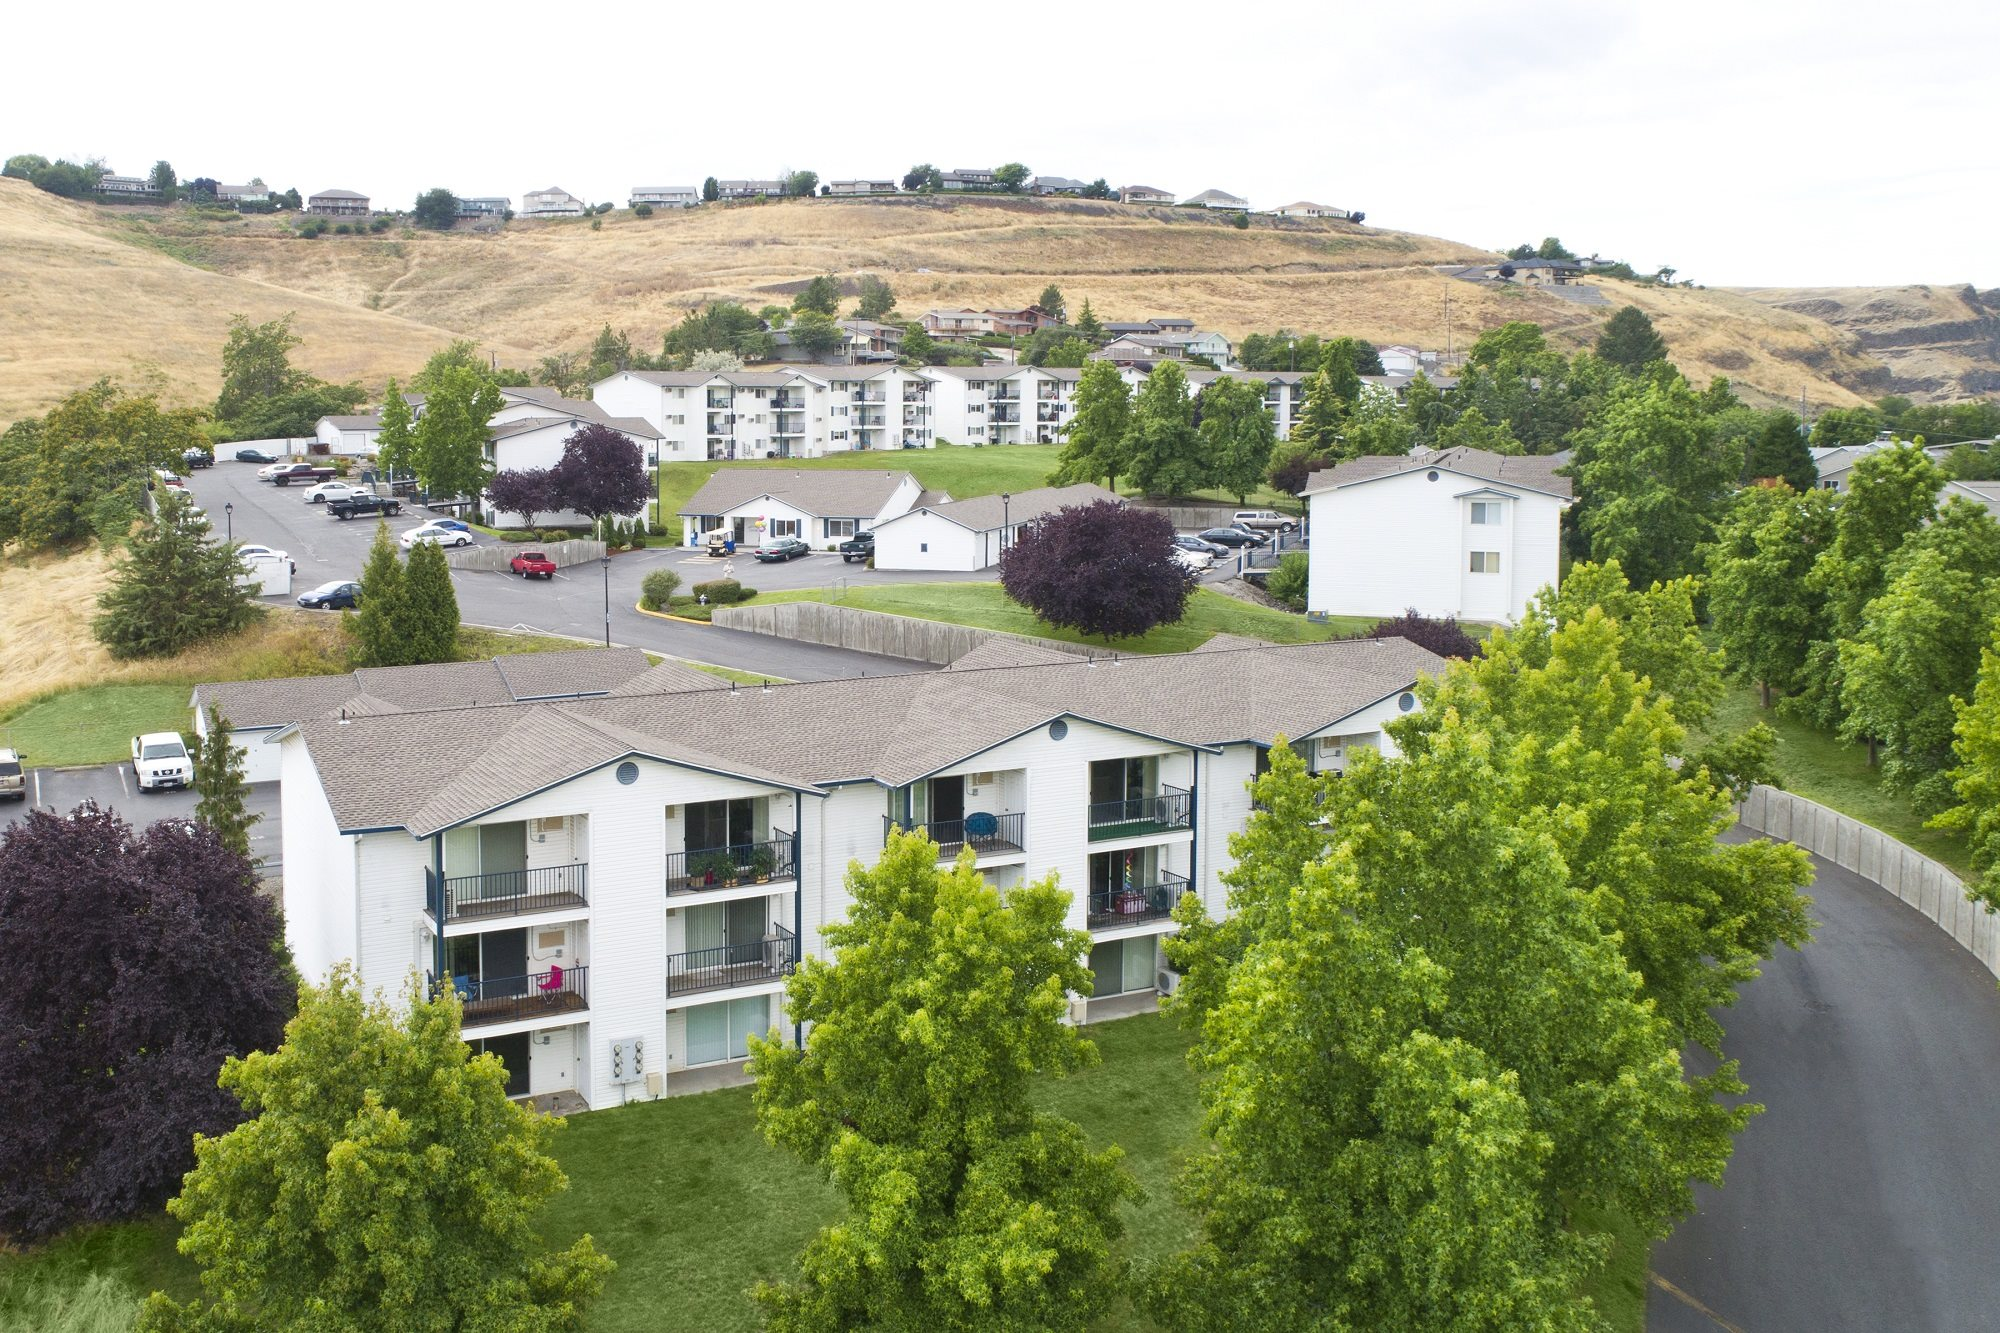 Westridge Apartments for rent in Clarkston, WA building exterior aerial view